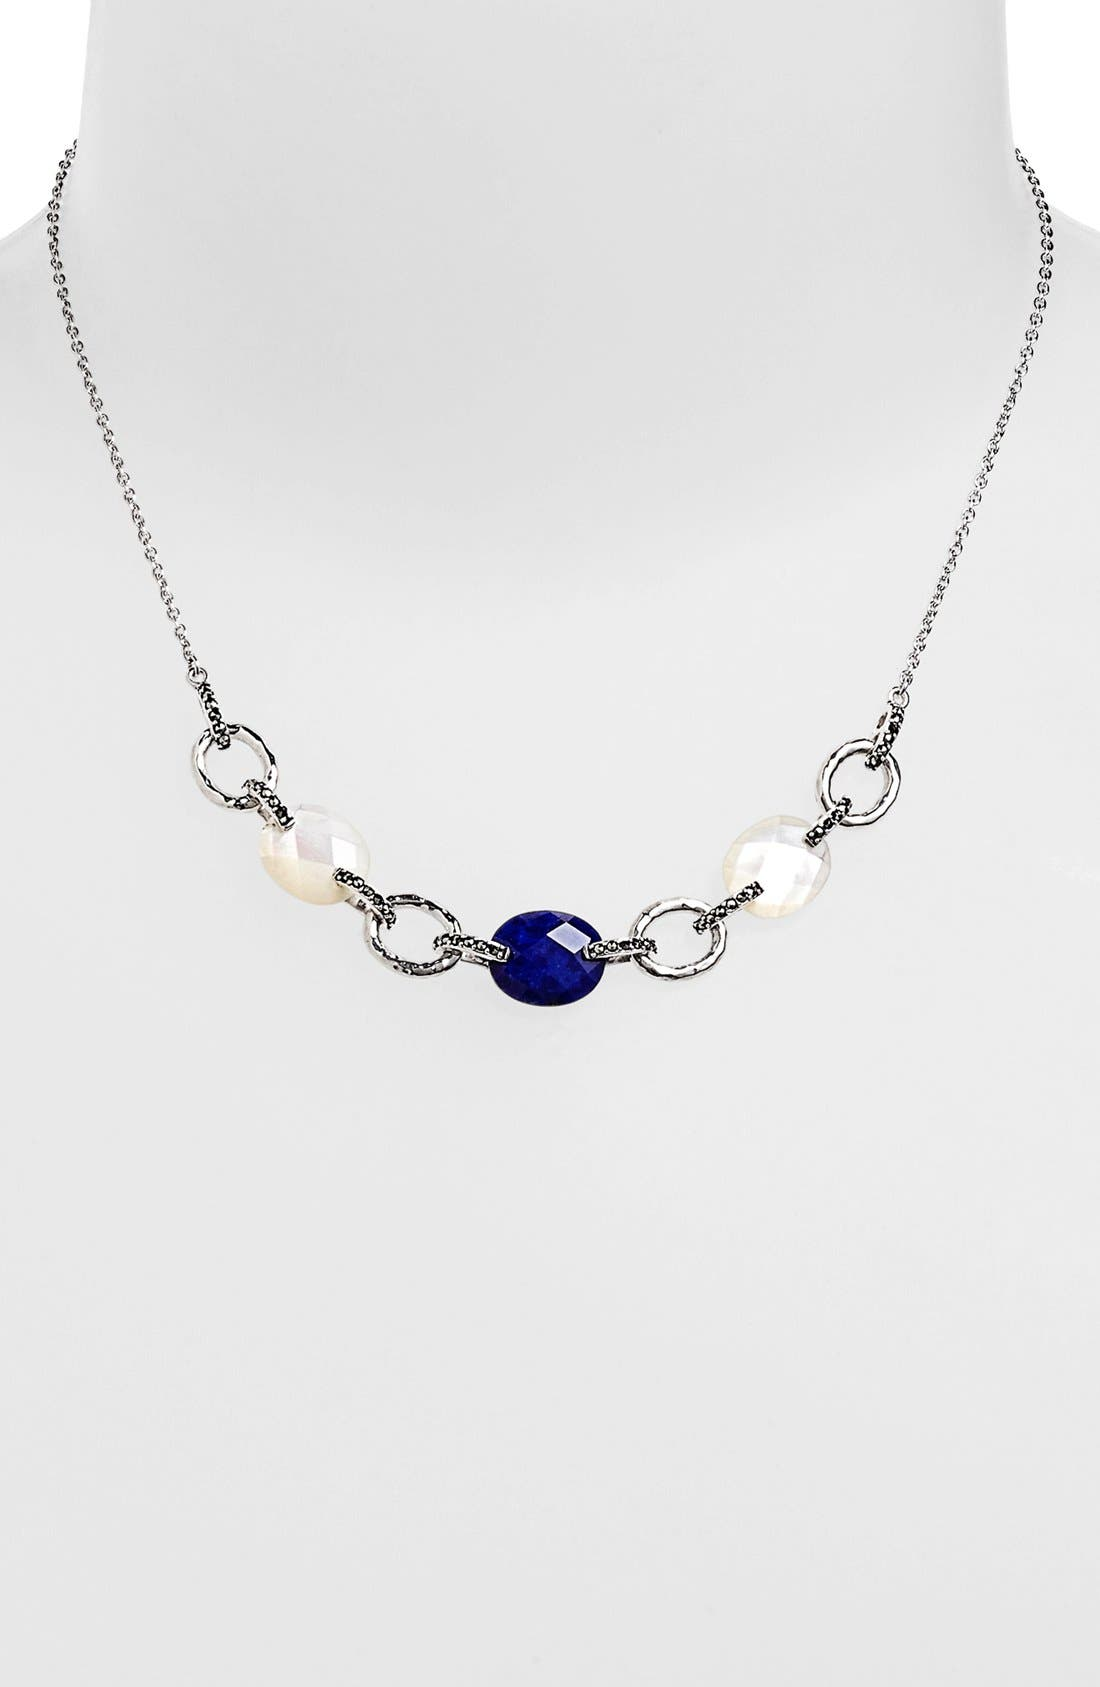 Alternate Image 1 Selected - Judith Jack 'Blue Sky' Multi Stone Frontal Necklace